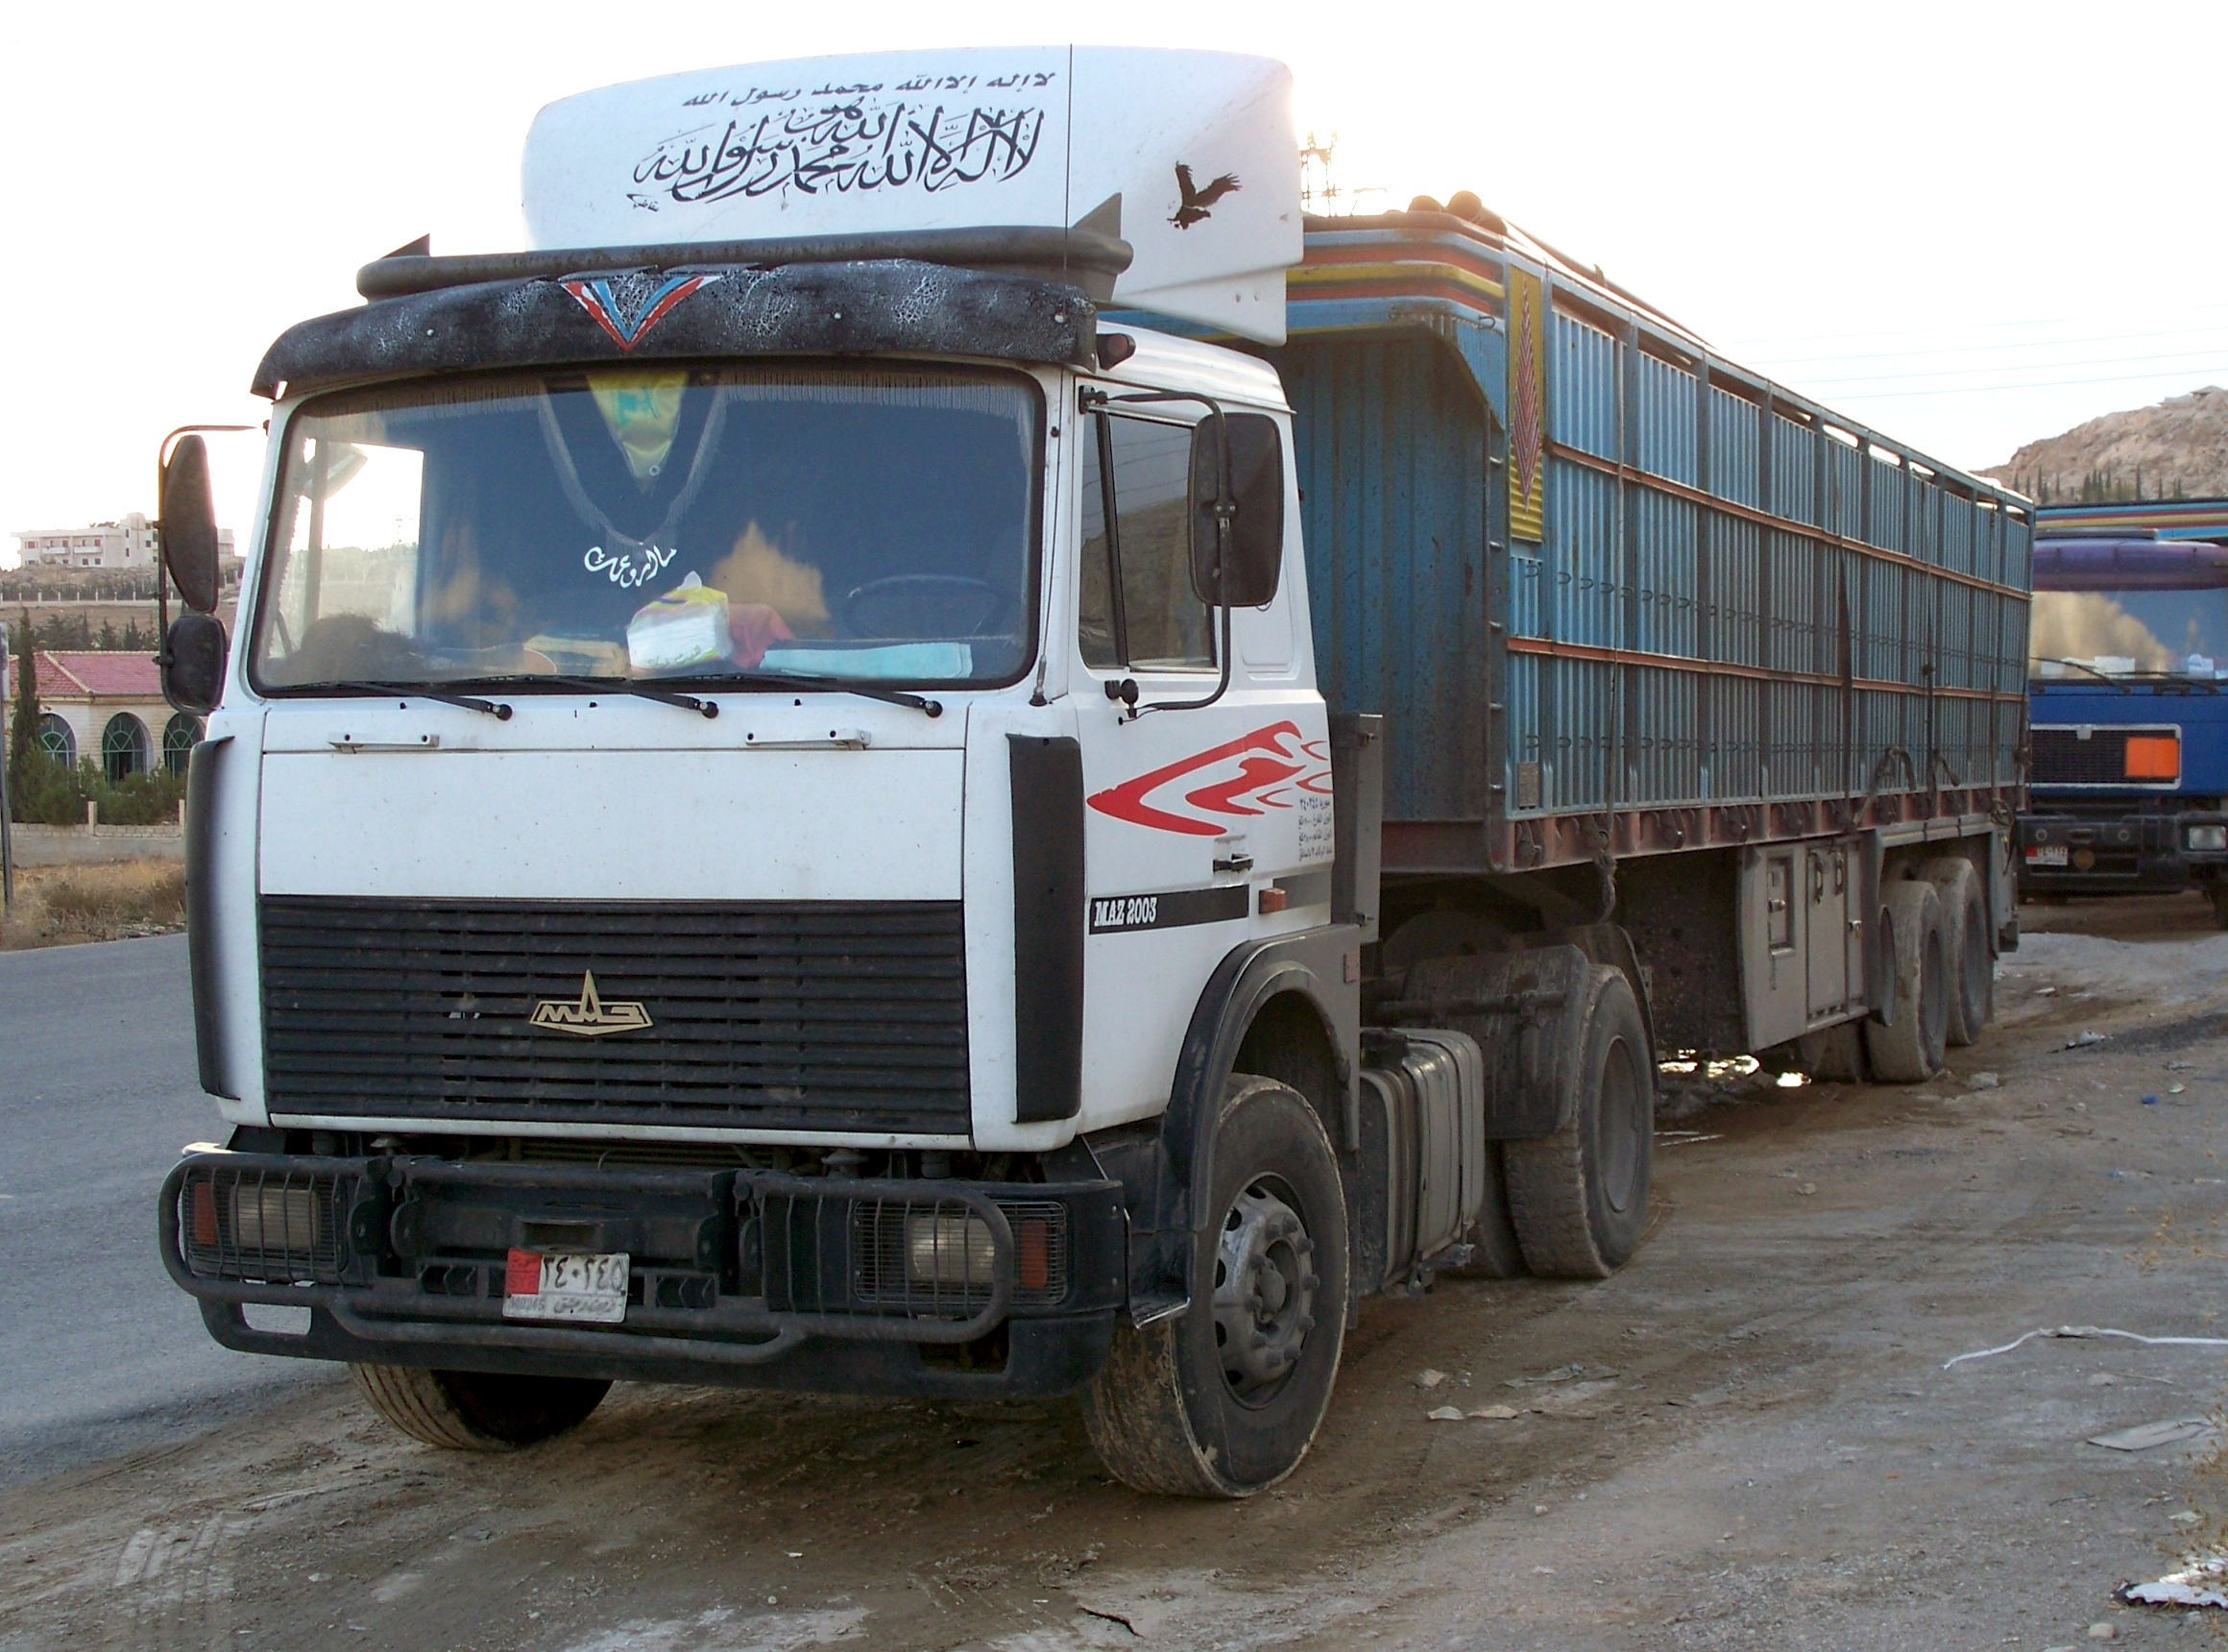 A humantarian aid lorry in Syria.